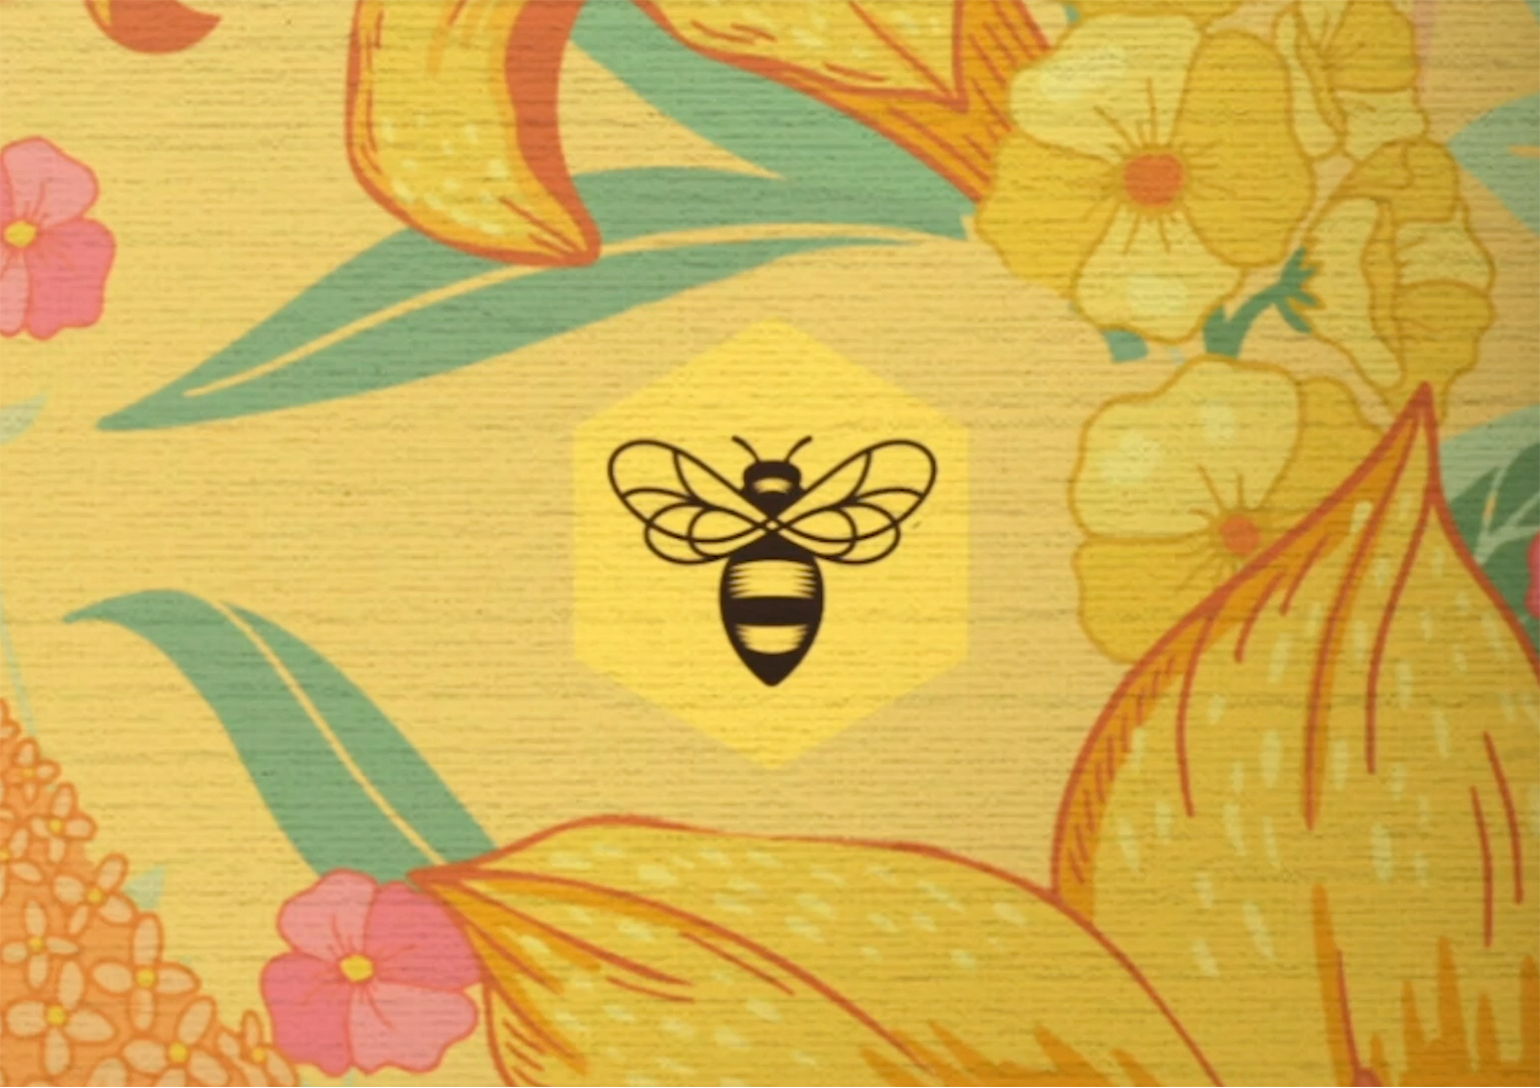 Burt's Bees Murals & Patterns